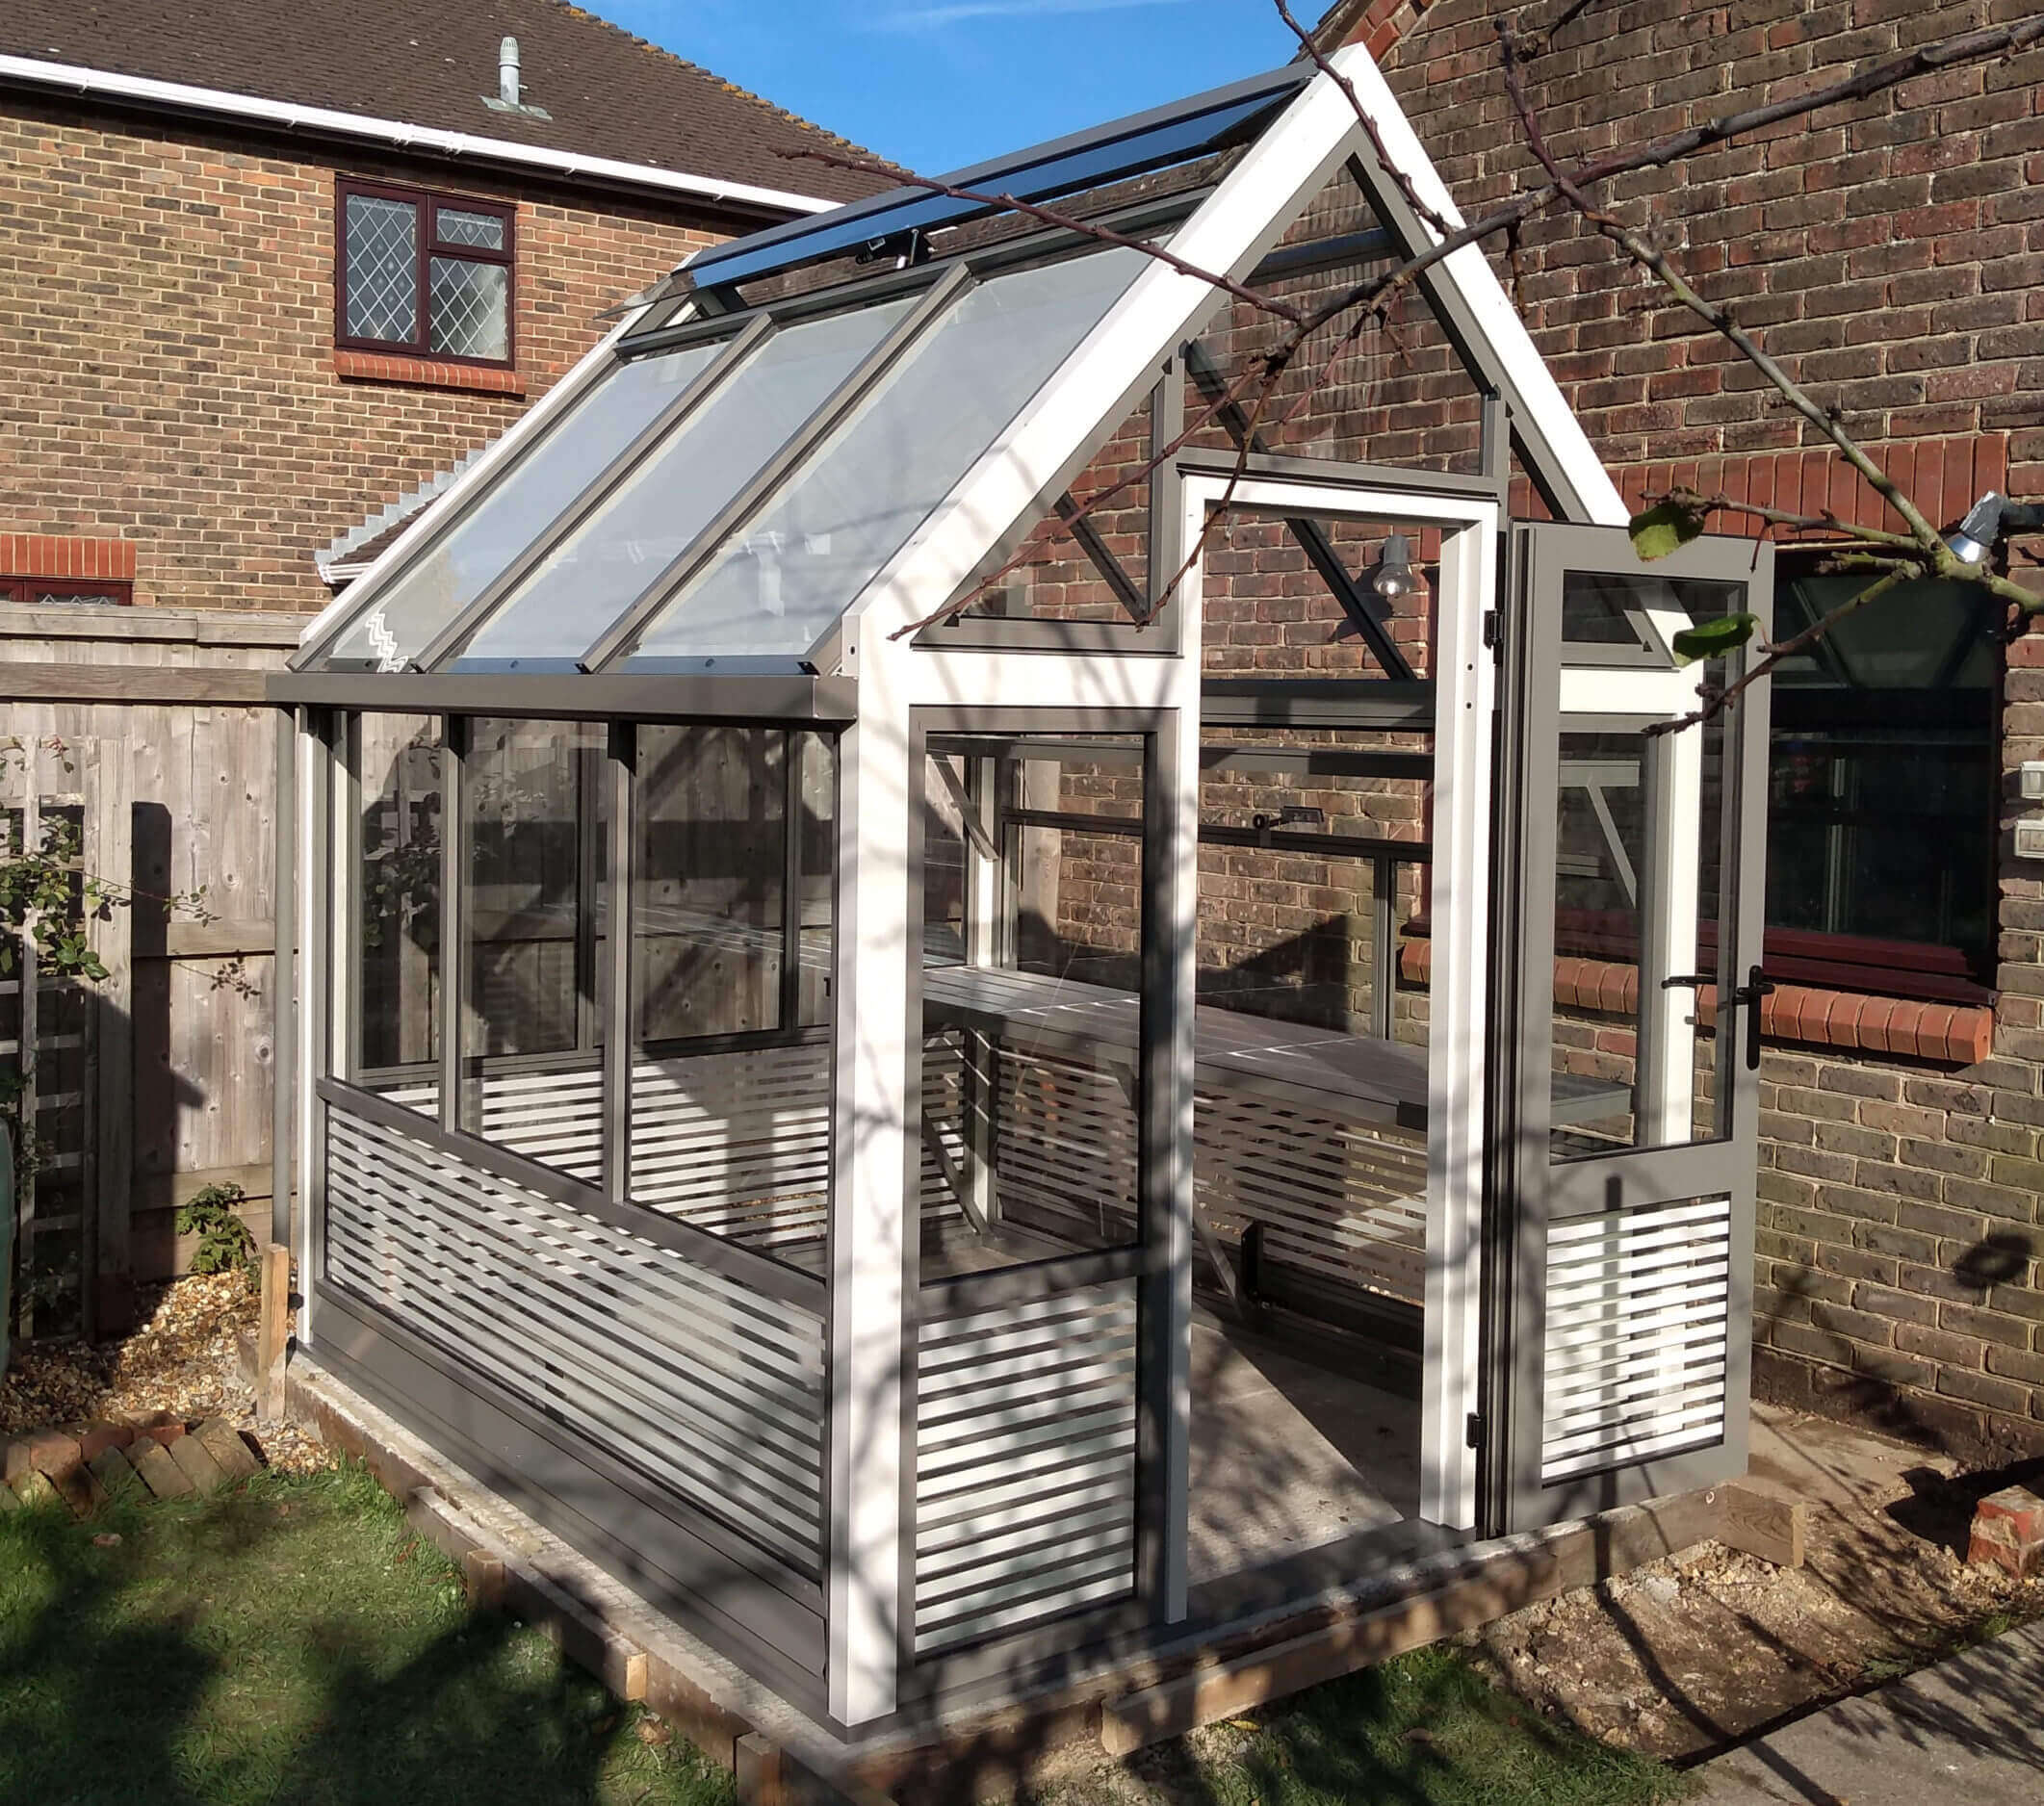 Attractive aluminium greenhouses